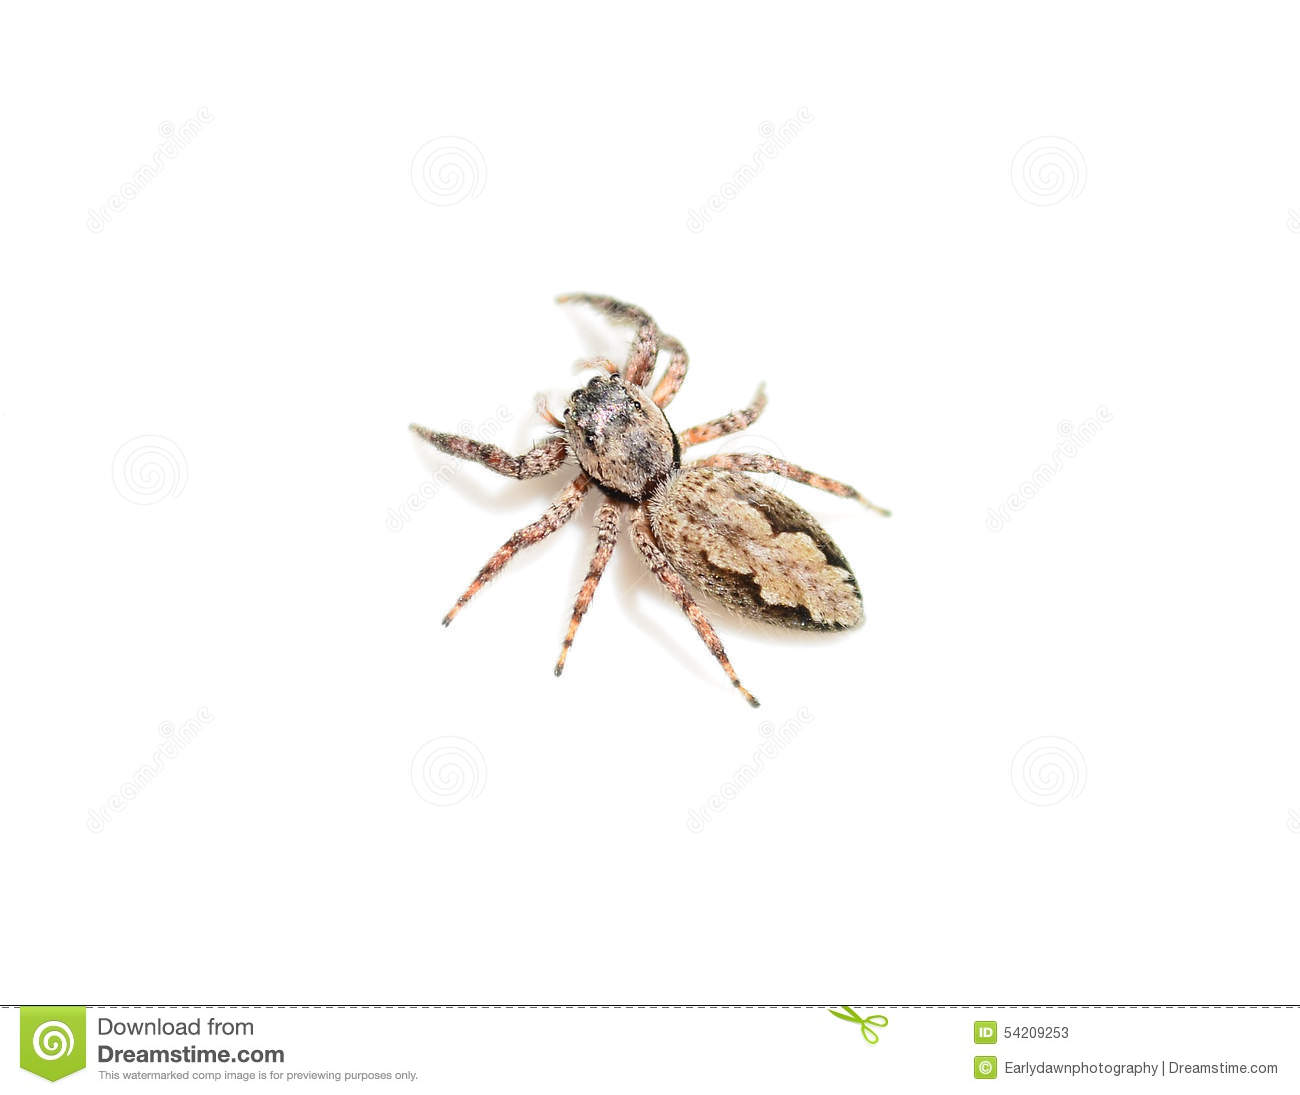 Jumping Spider clipart #14, Download drawings